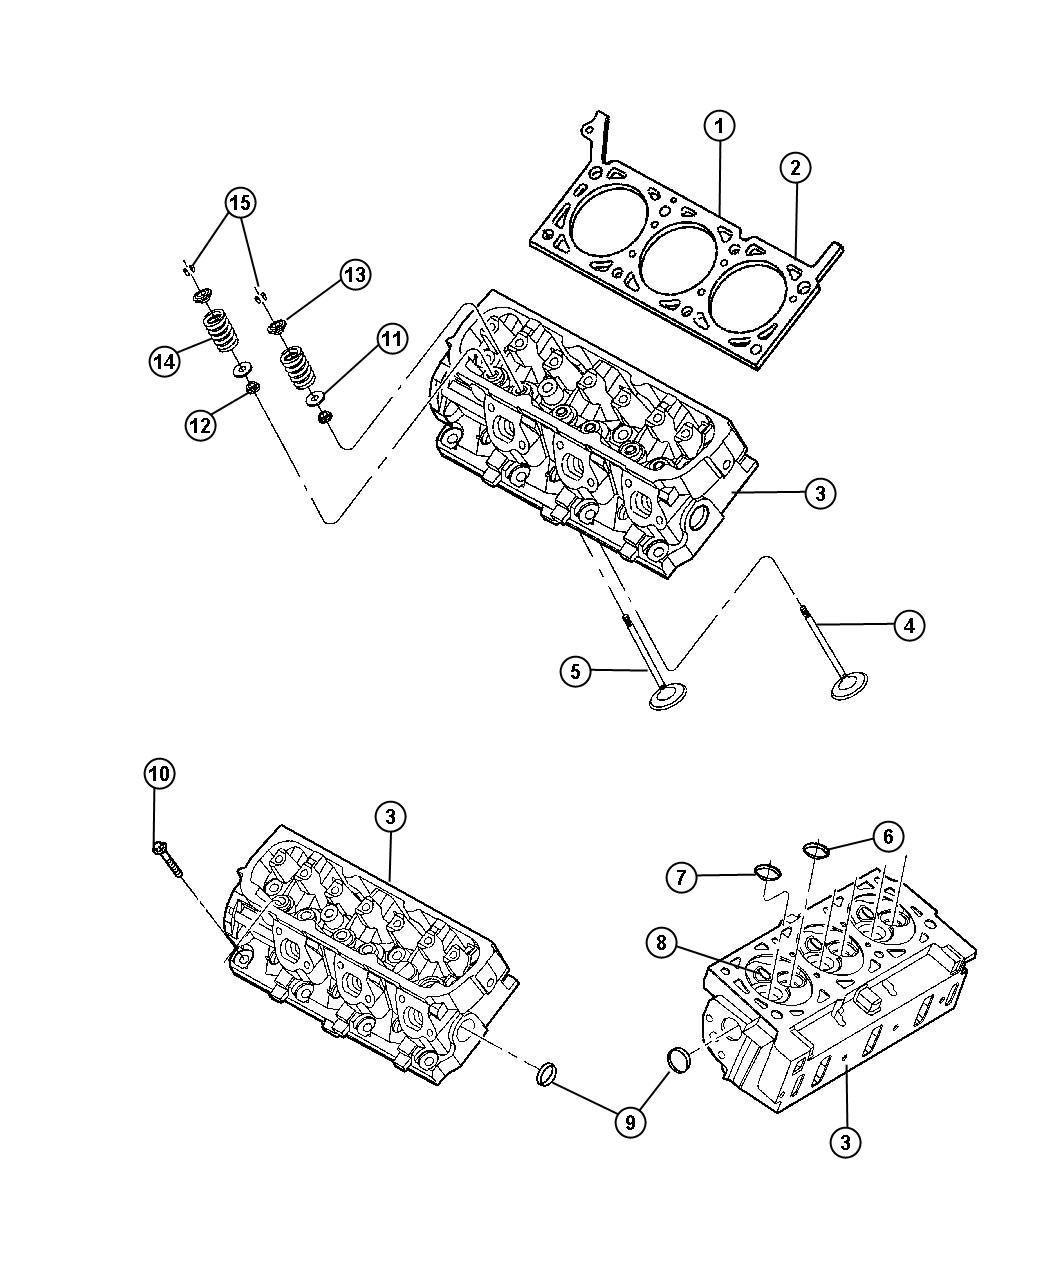 Dodge Ram Head Cylinder Used For Right And Left